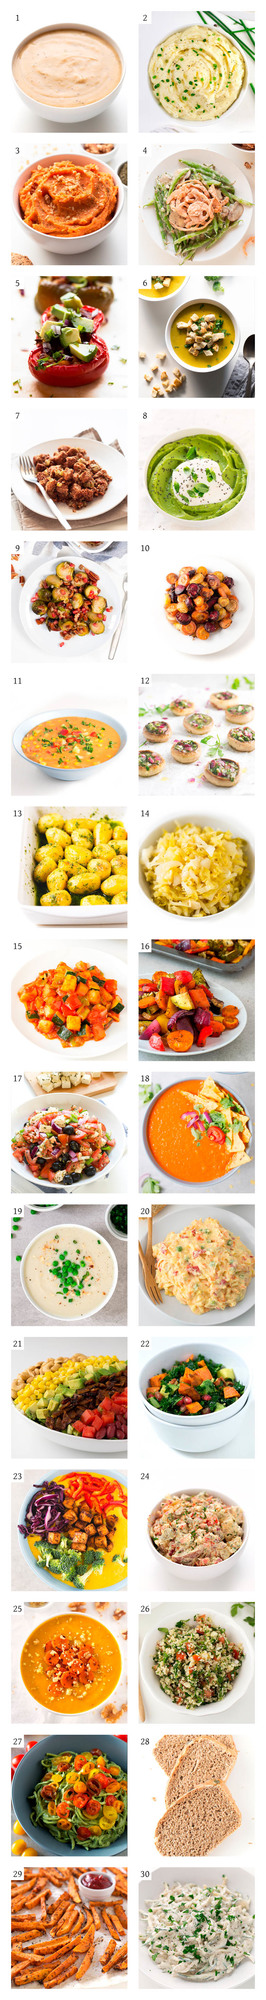 Vegan Thanksgiving Sides - 100 delicious, easy, vegan, Thanksgiving recipes. We've included all kinds of recipes: appetizers & snacks, sides, mains, desserts and drinks.